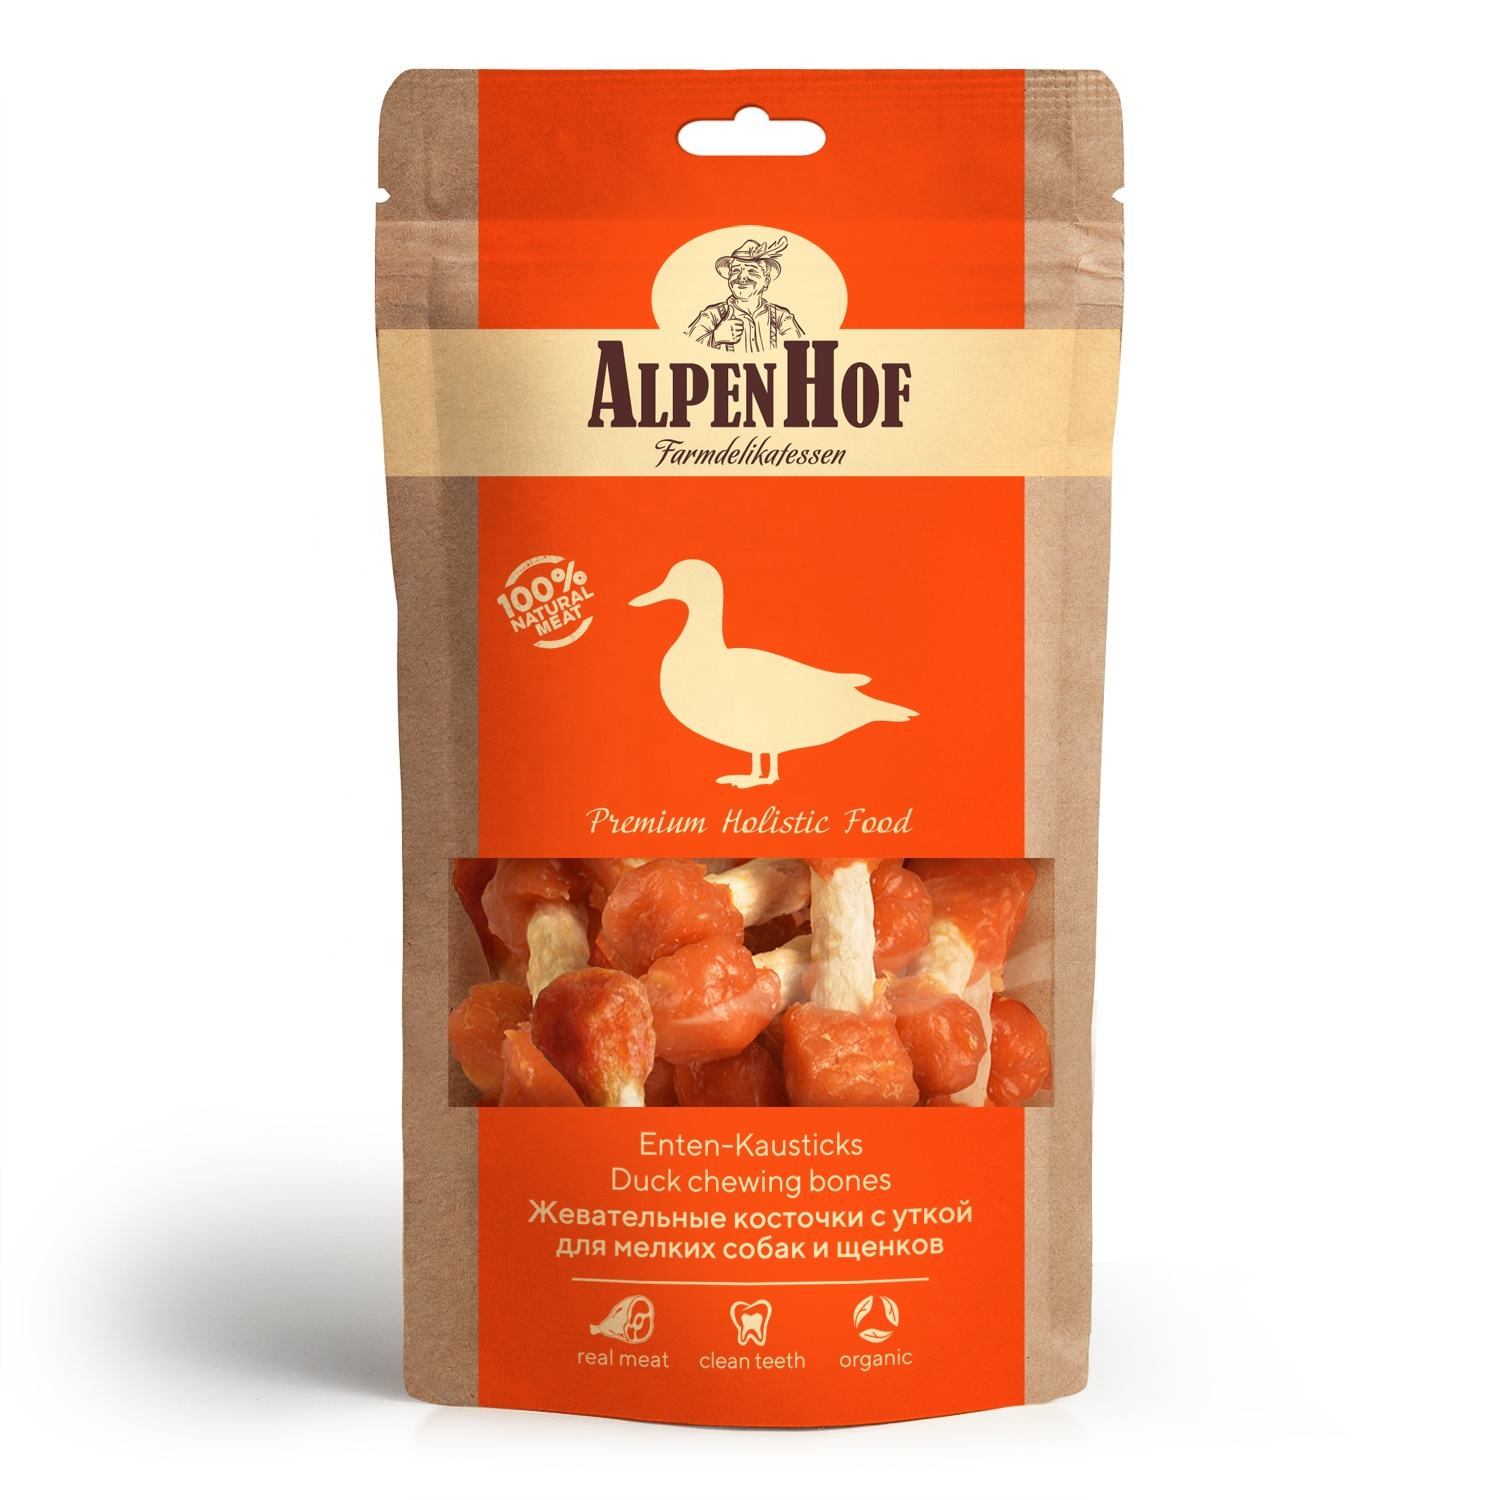 AlpenHof Duck chewing bones for puppies/small dogs 50 g. Meat And Animal Products